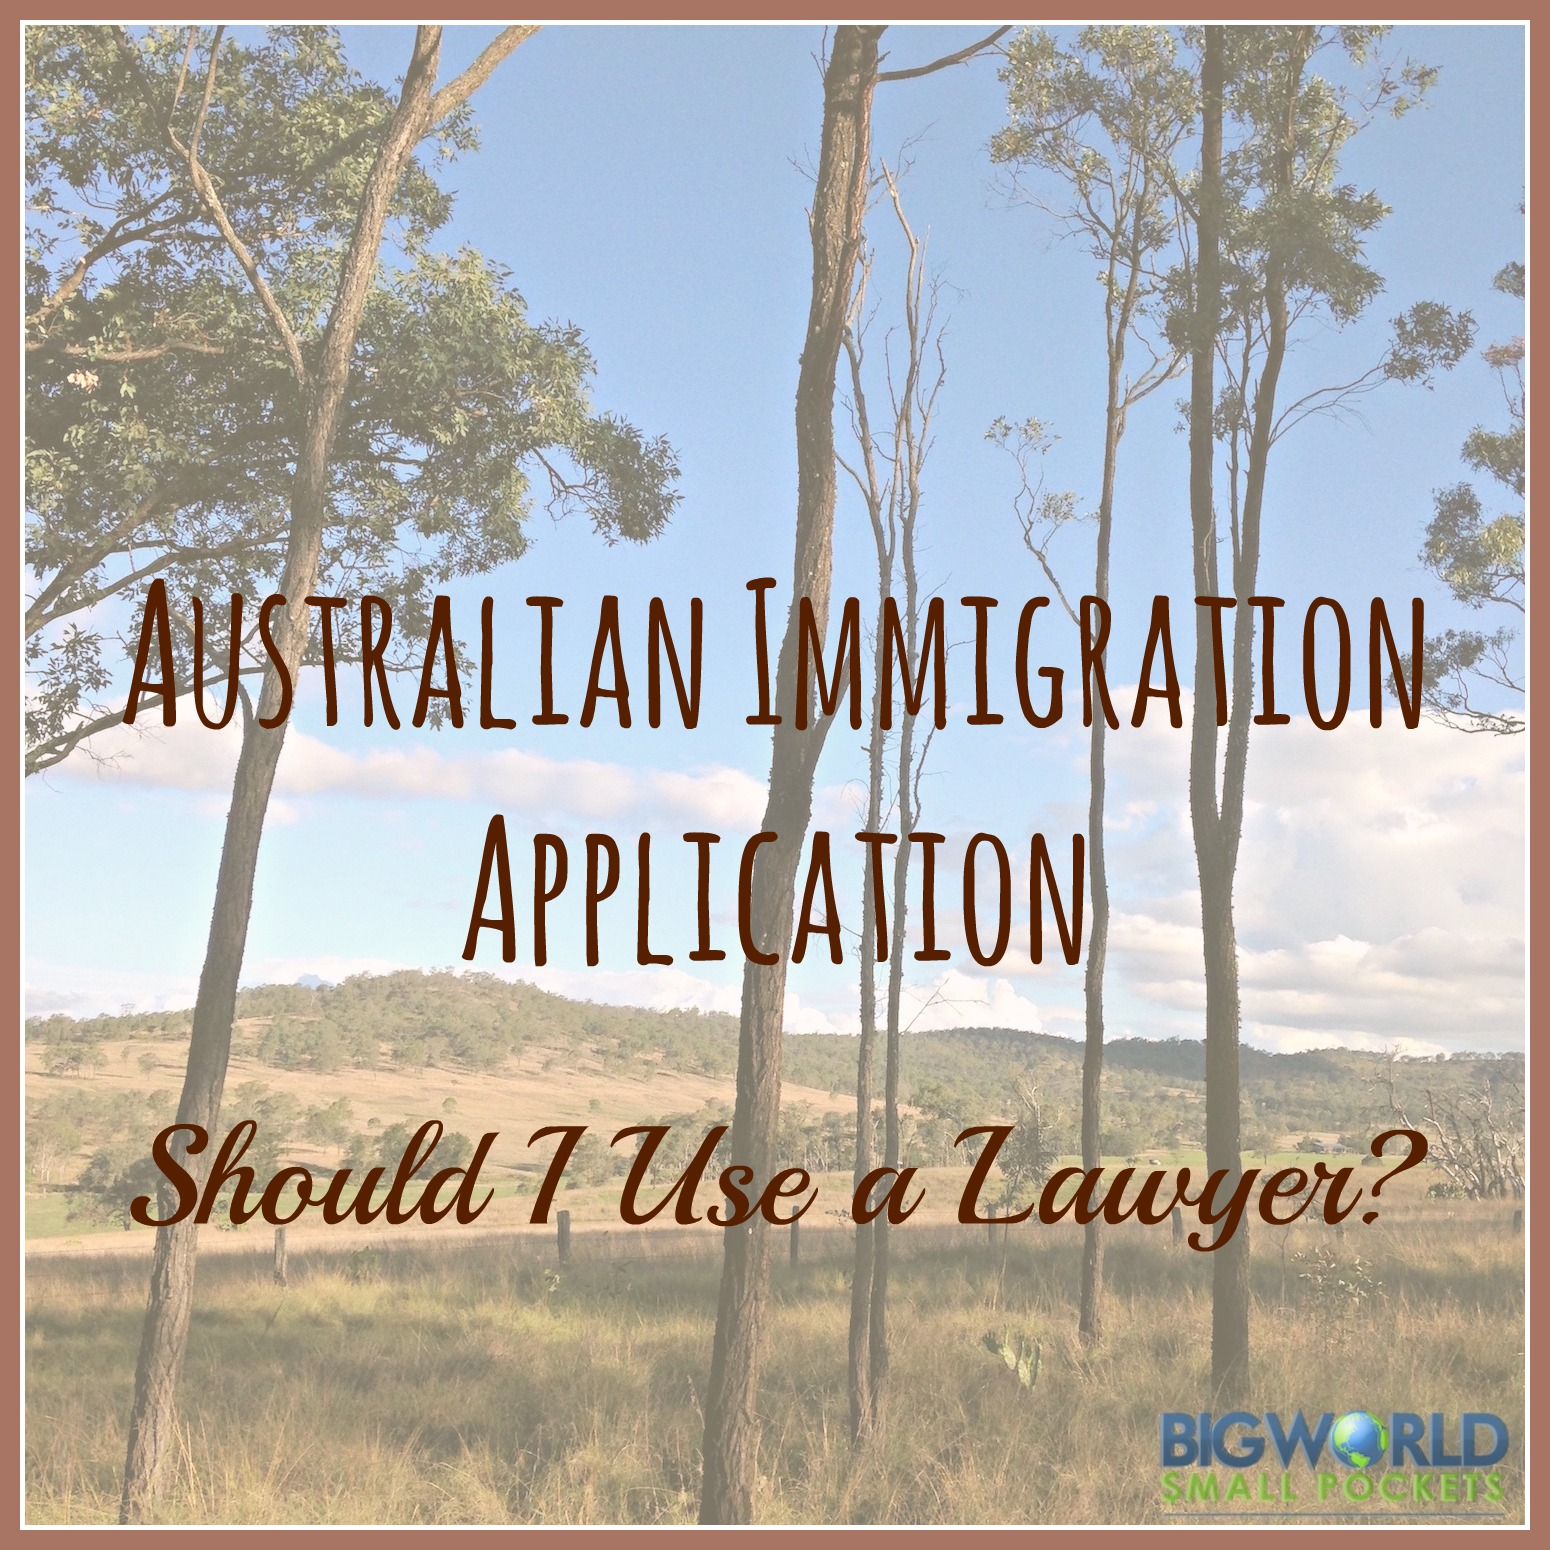 Australian Immigration Application Should I Use a Lawyer Big